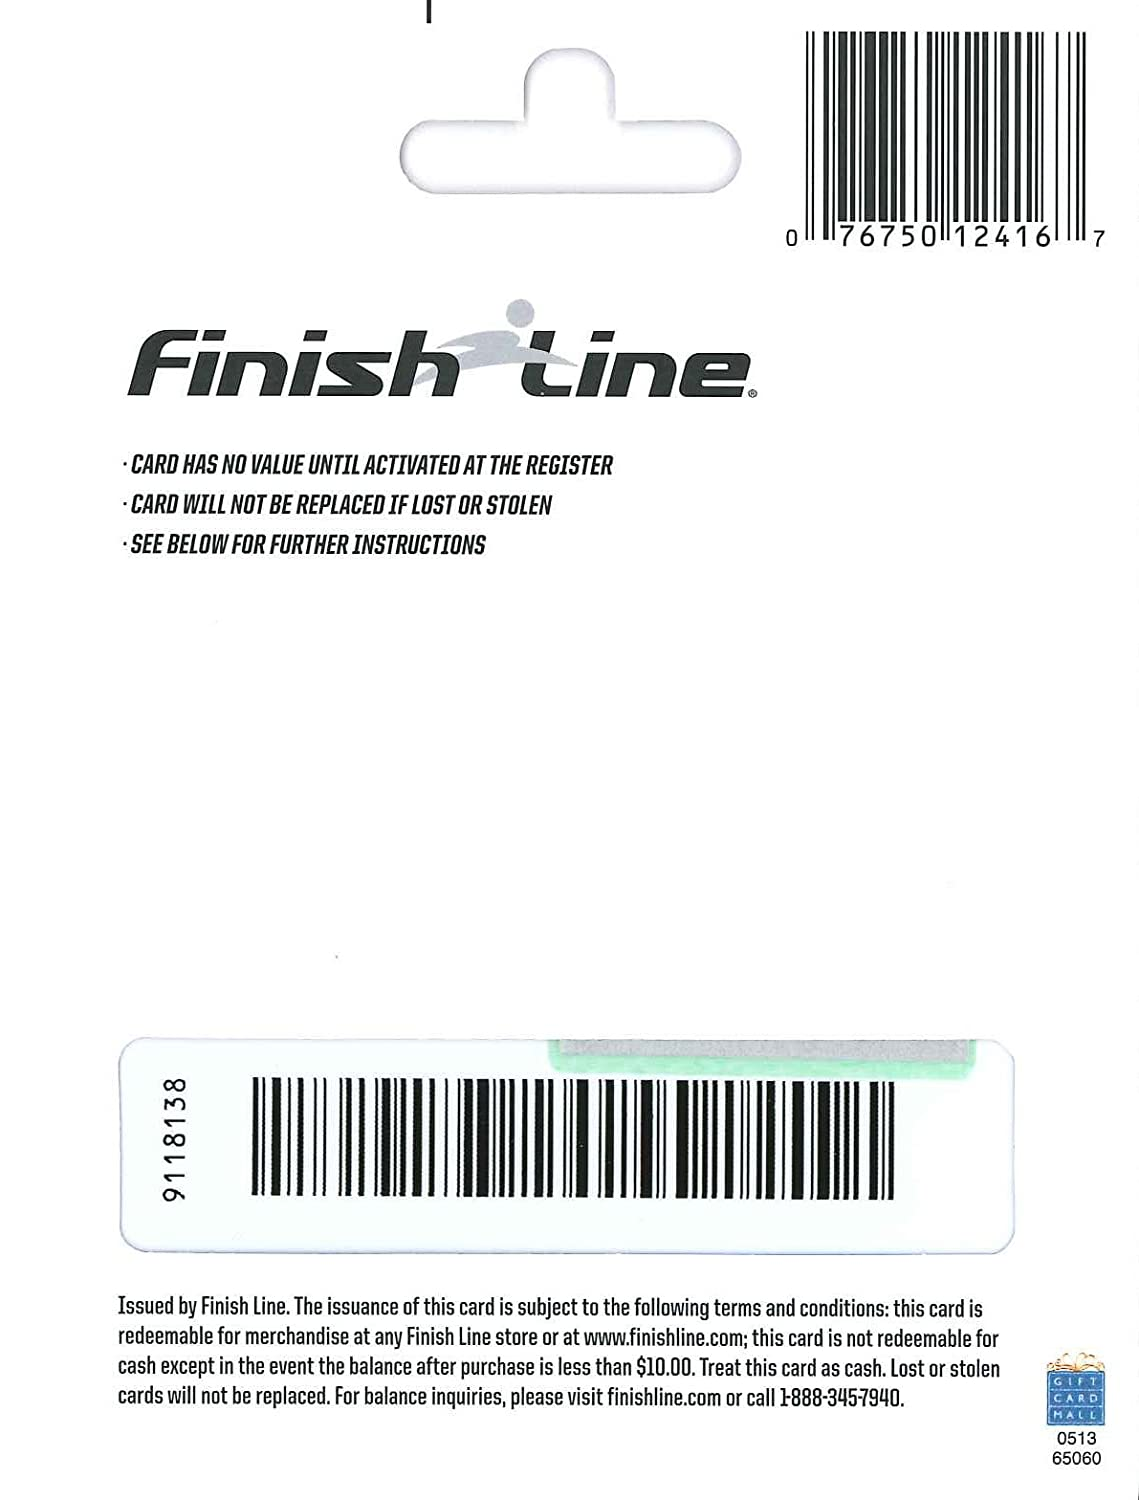 Amazon.com: Finish Line Gift Card $25: Gift Cards